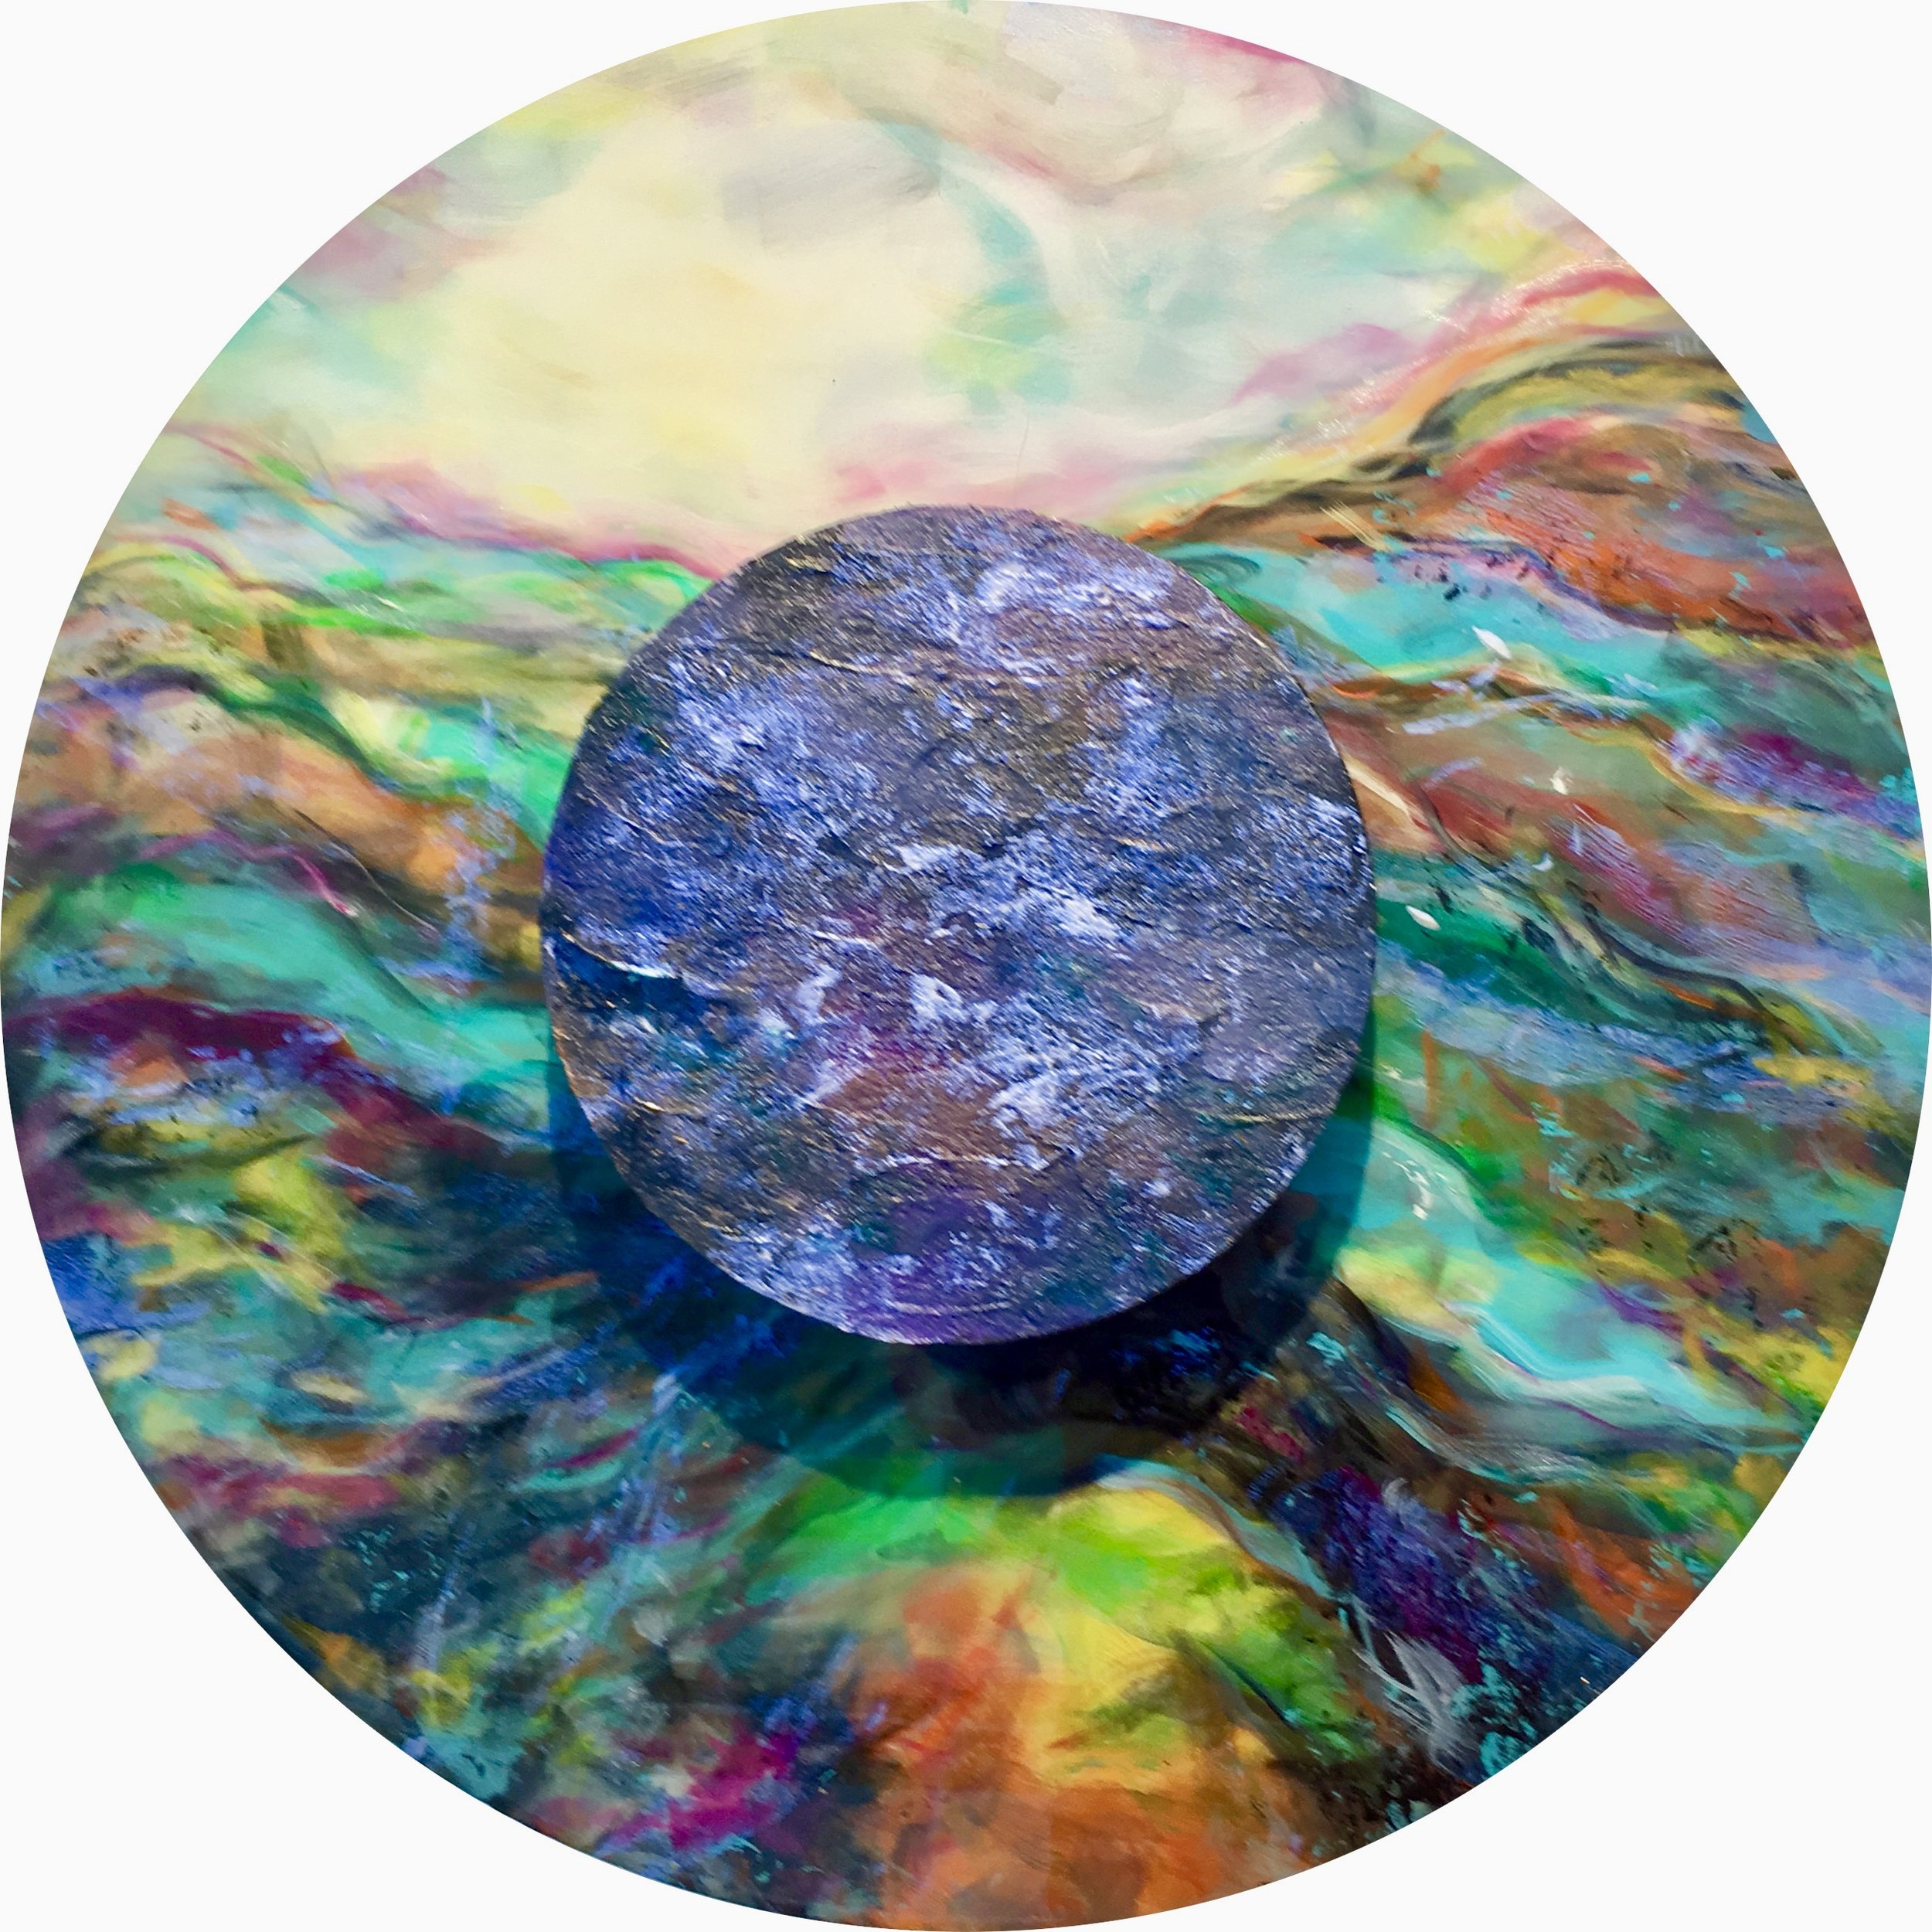 Serenity Disc 10, Sold